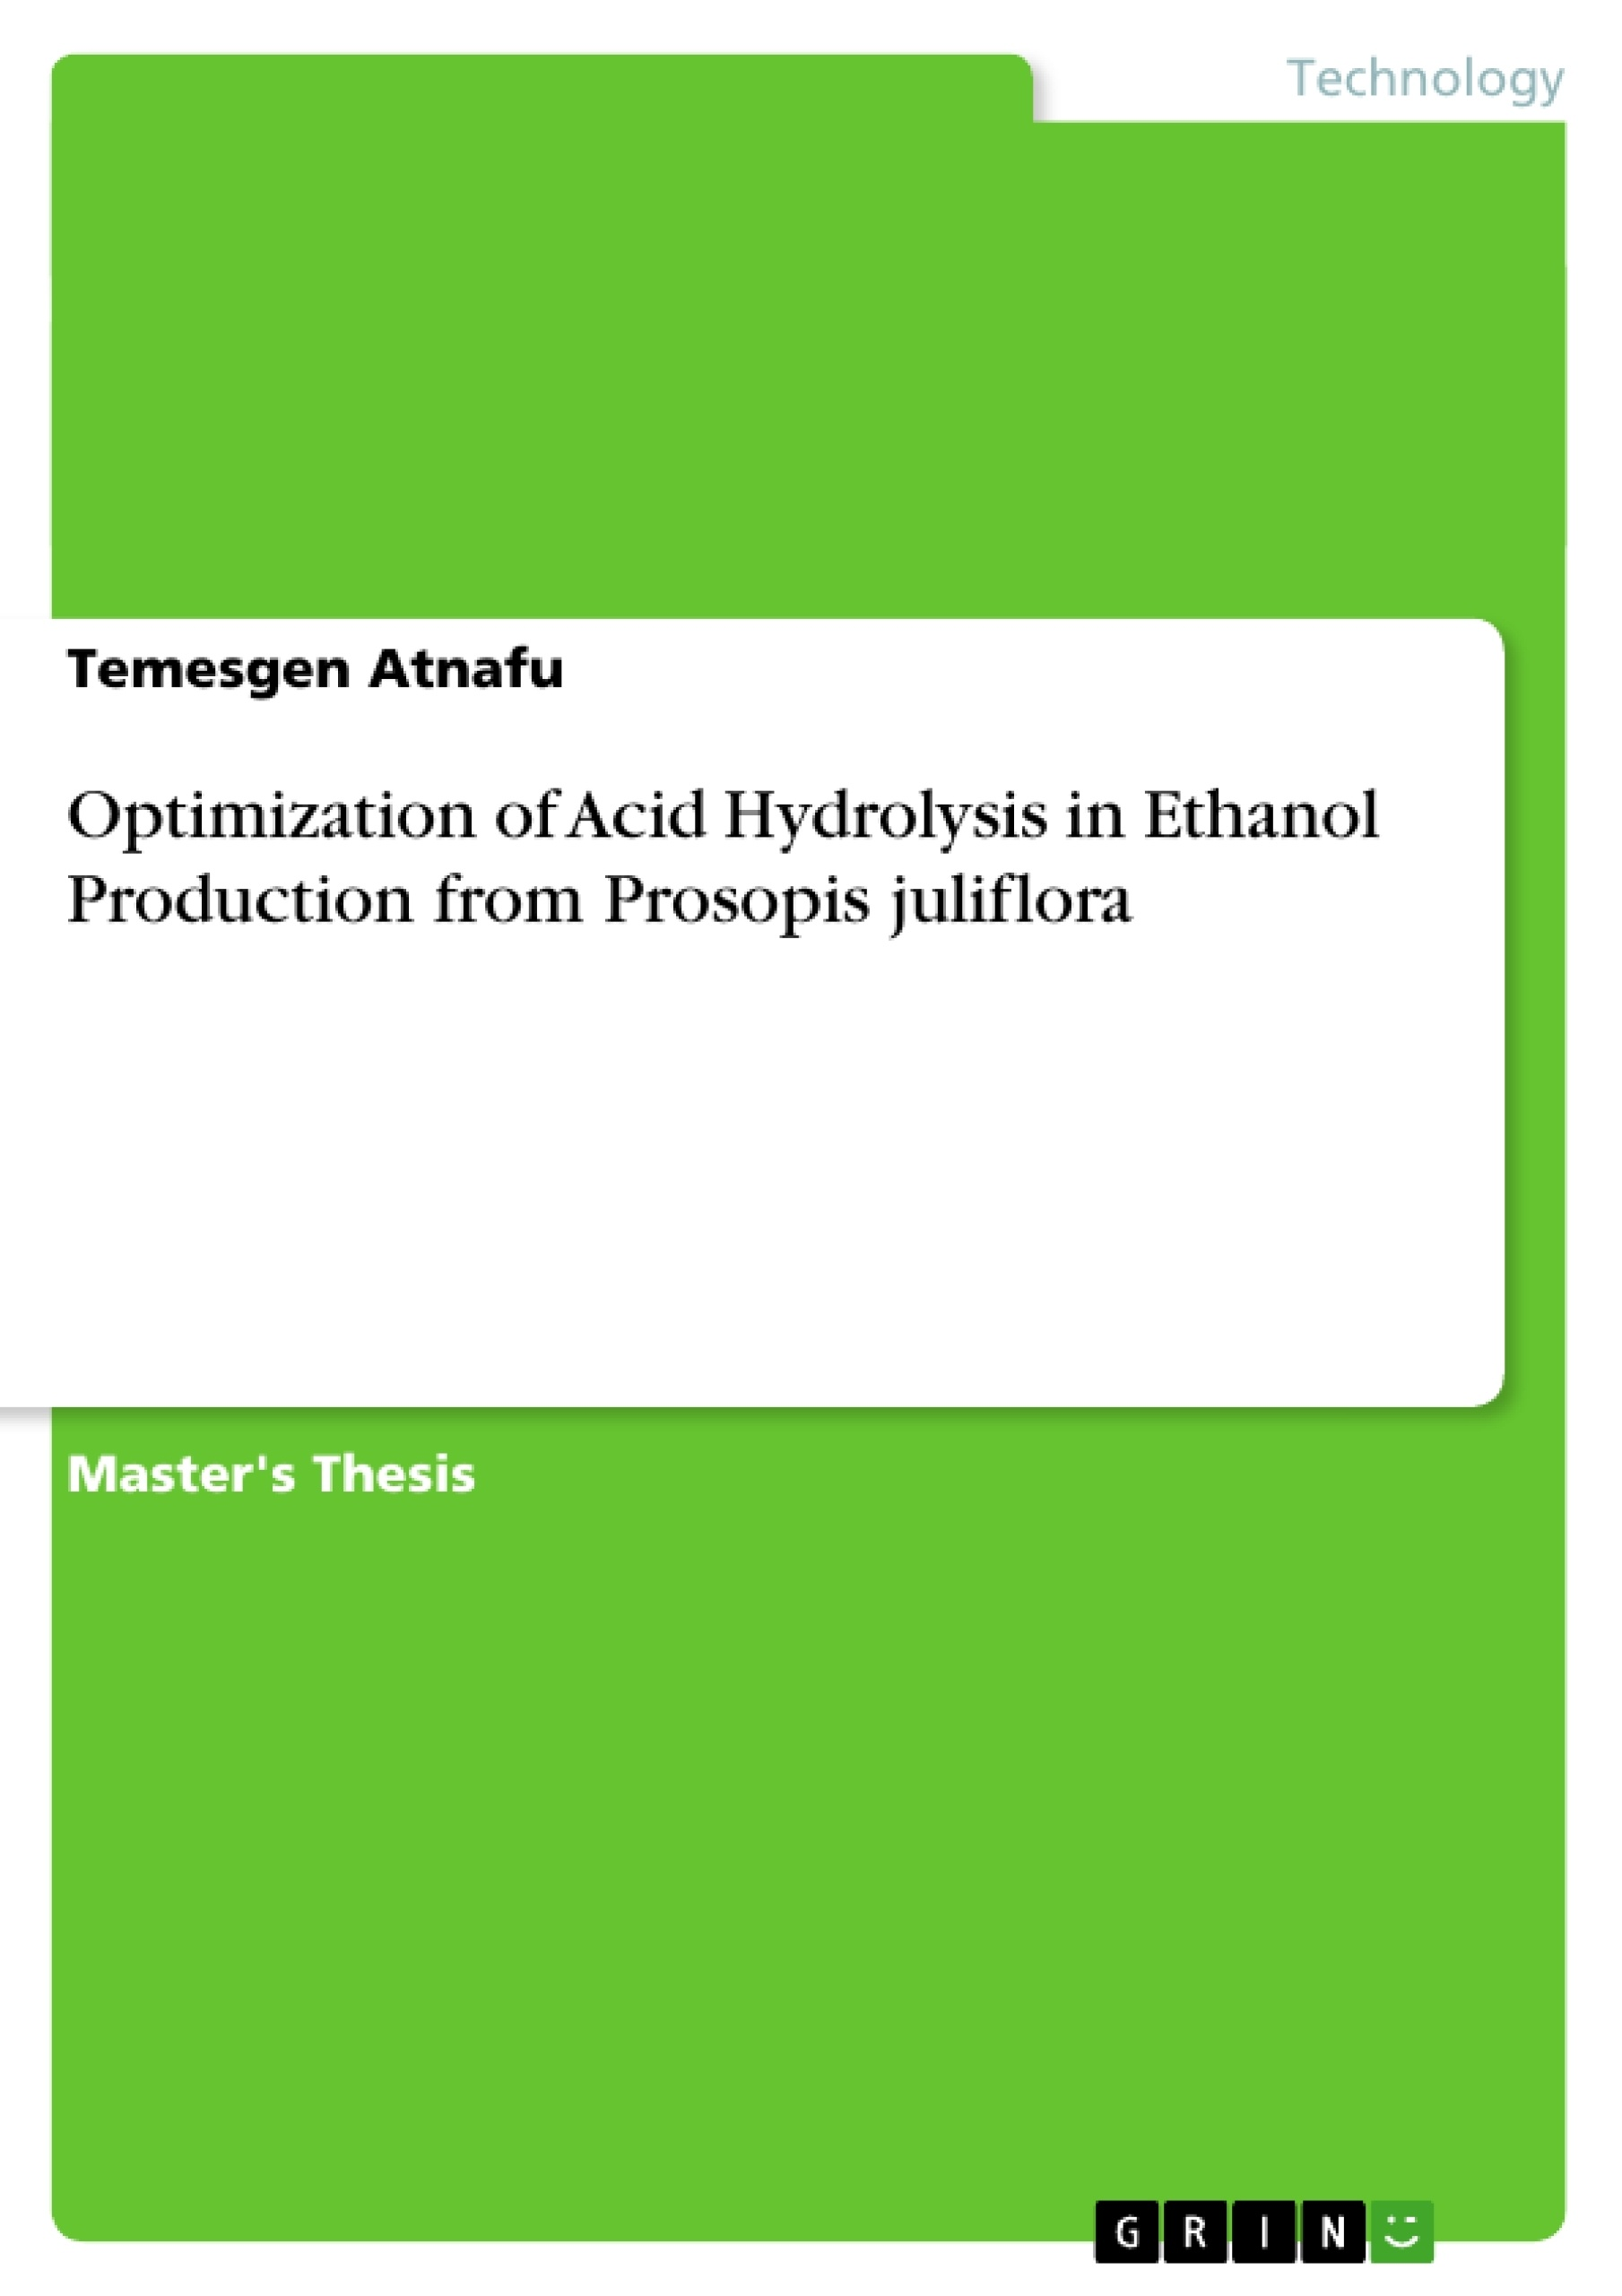 Title: Optimization of Acid Hydrolysis in Ethanol Production from Prosopis juliflora